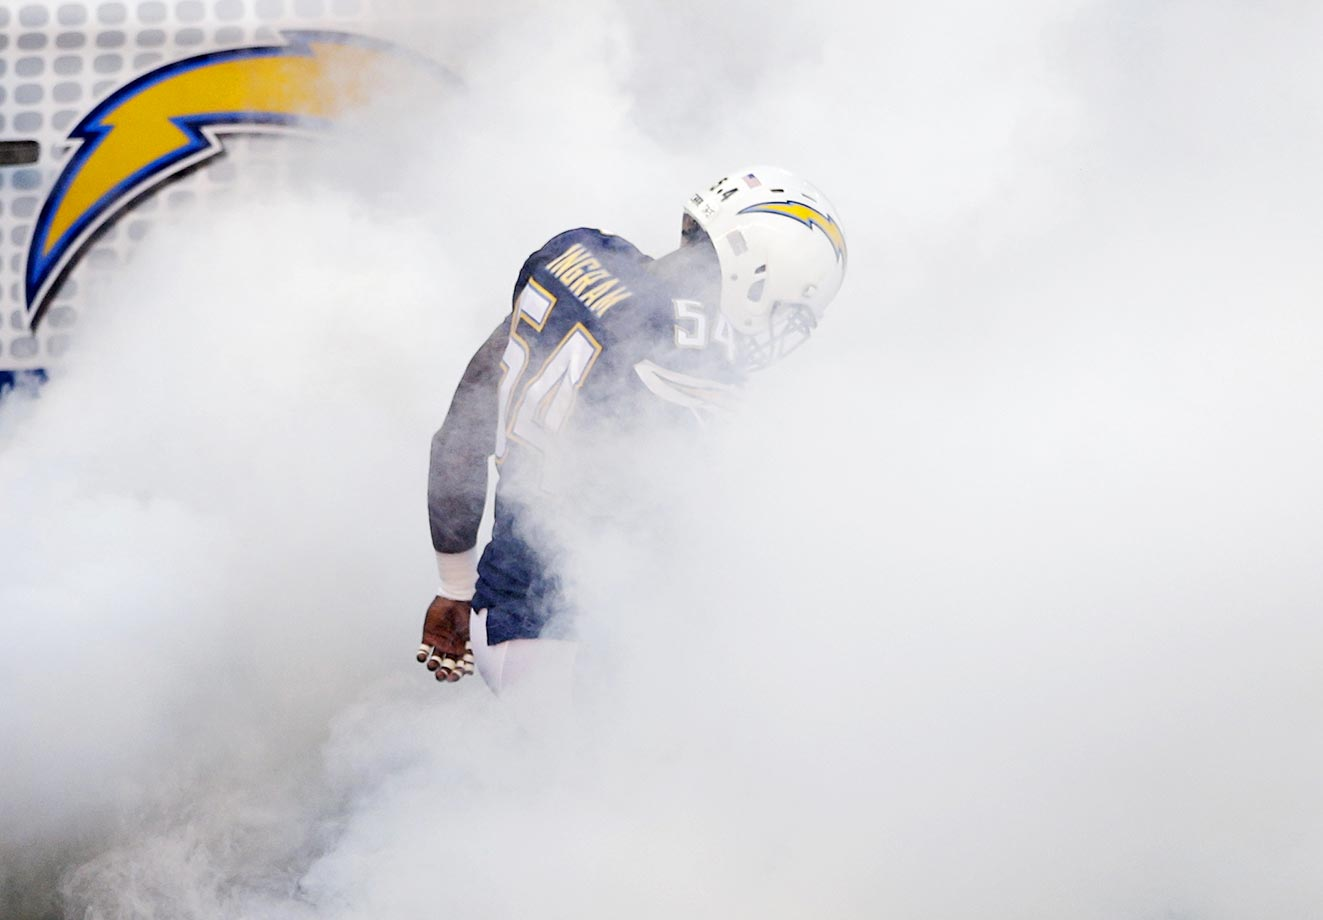 San Diego's linebacker Melvin Ingram takes the field before playing the Dallas Cowboys in a preseason game.